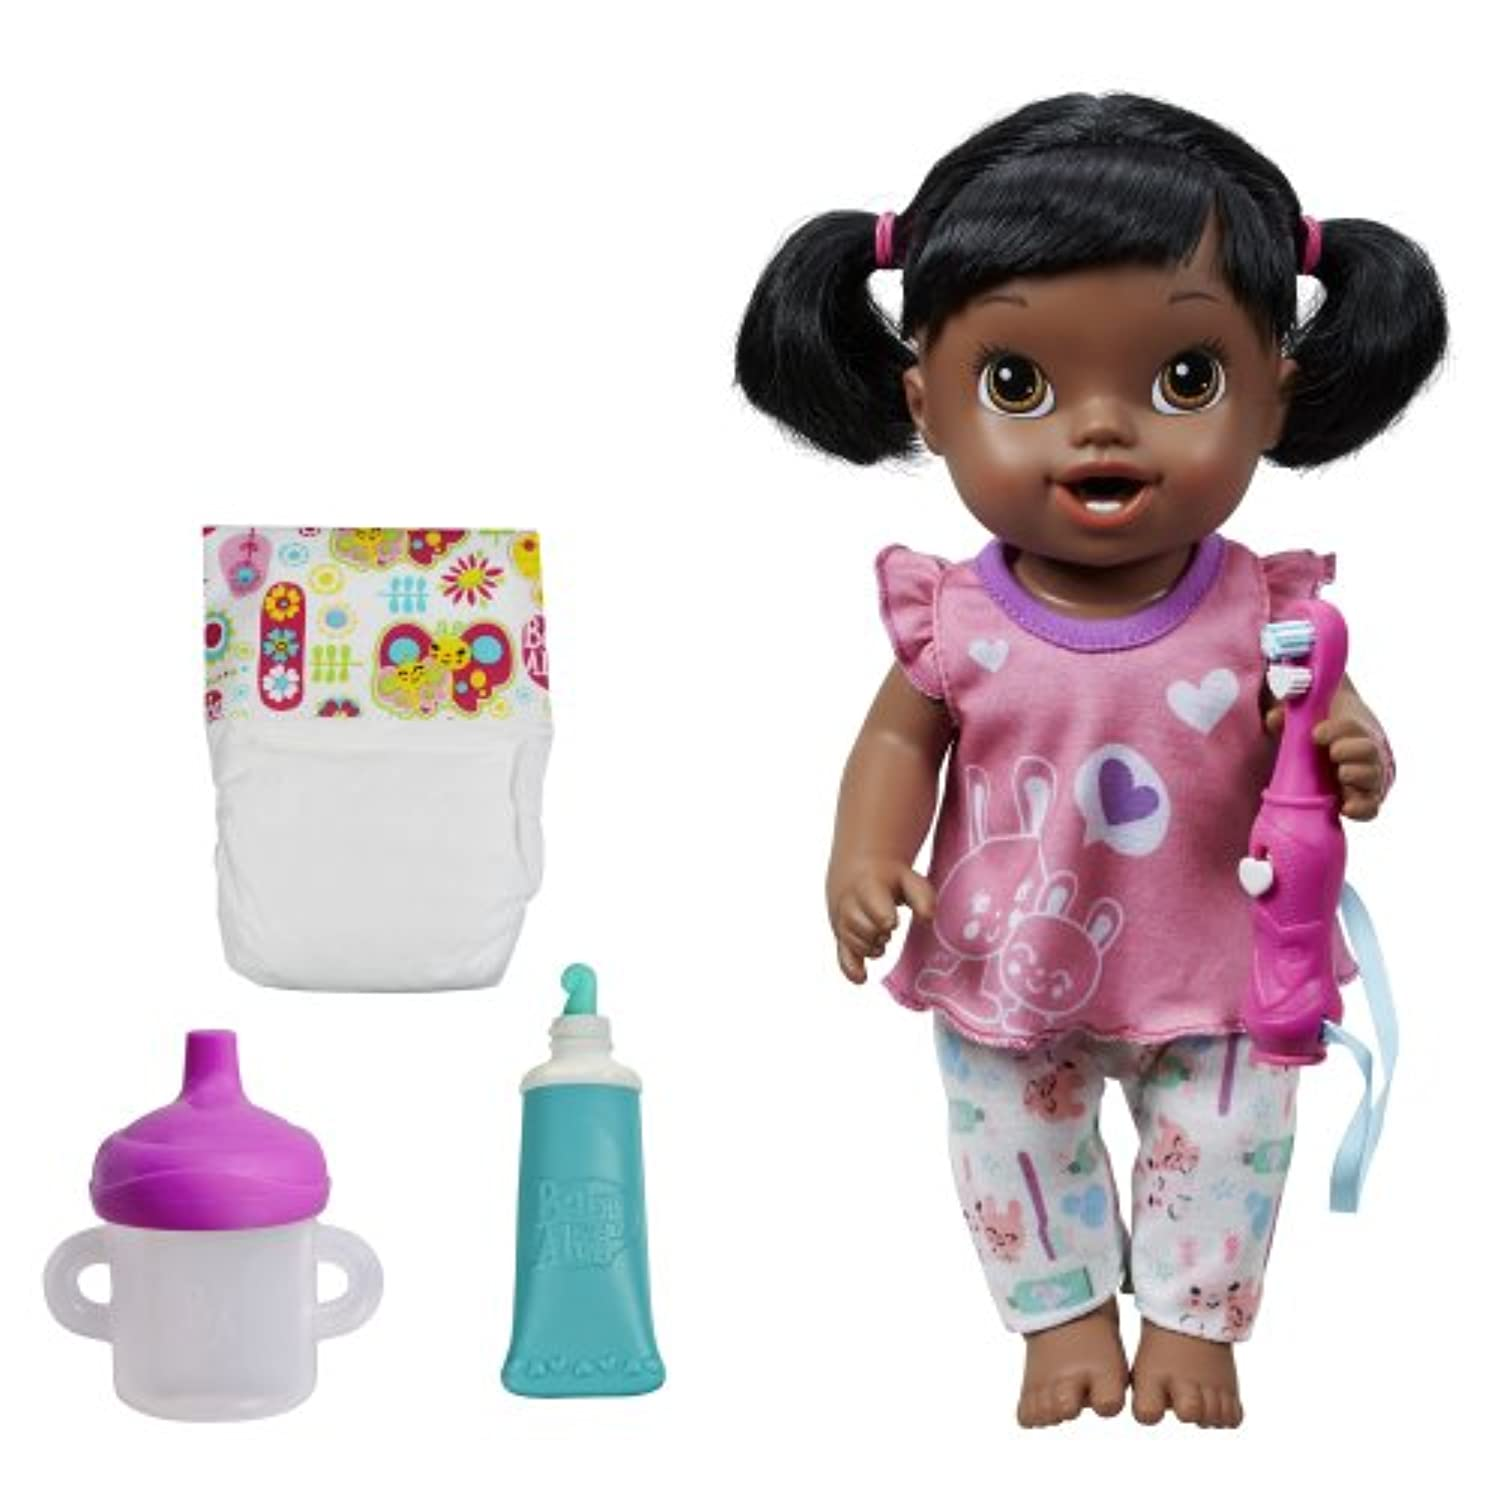 Baby Alive Brushy Brushy Baby Doll - African American by Baby Alive [並行輸入品]